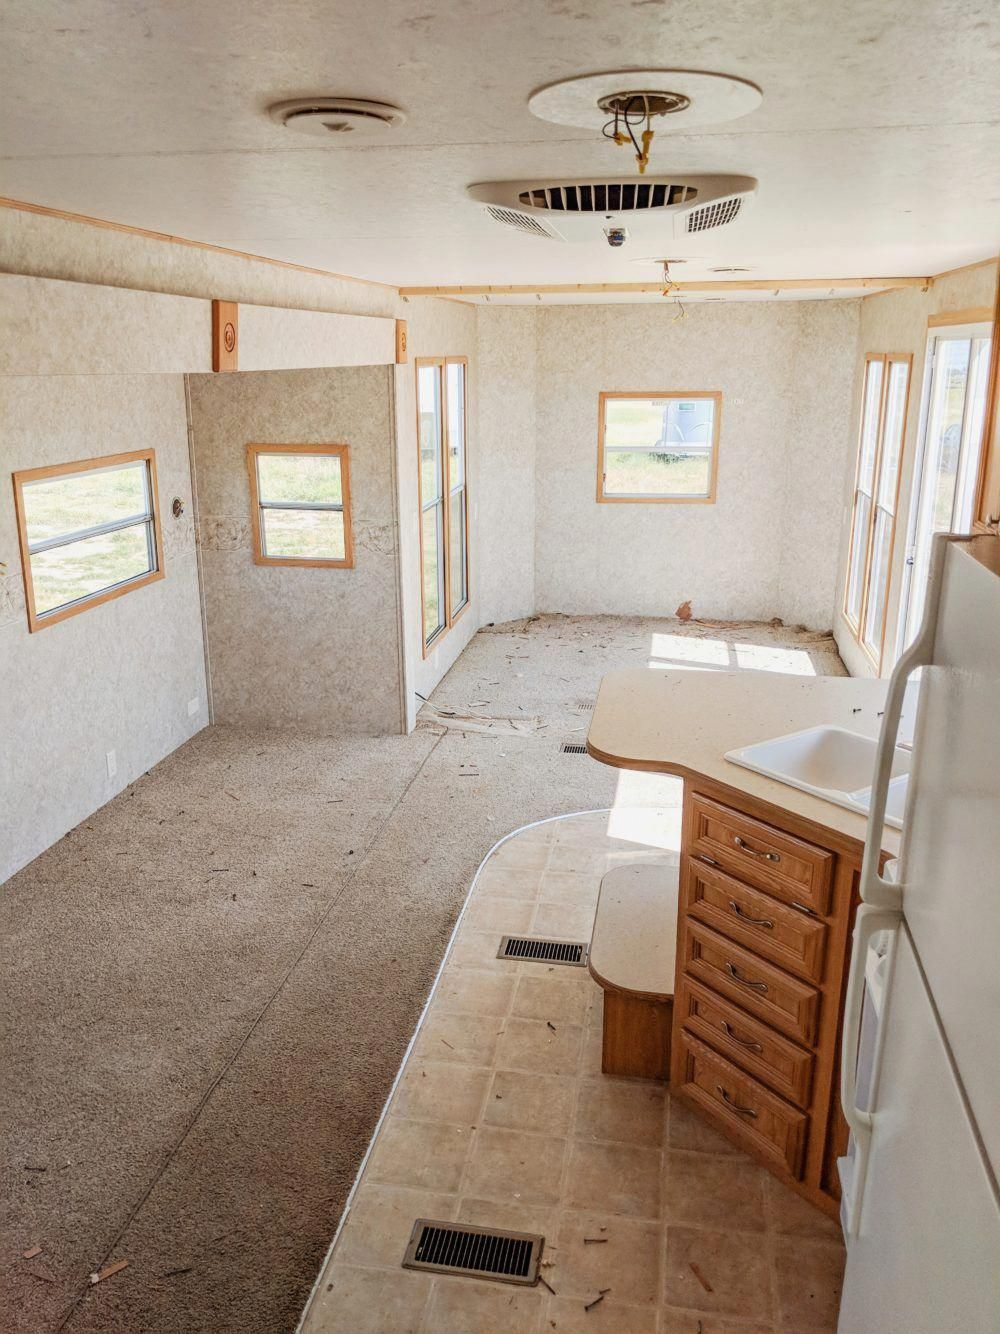 Essentially Improvements To Your House Must Not Be Done To Get A Tax Break But To Increase Its Value And Make Life More Pleas In 2020 Paint Rv Rv Interior Rv Remodel